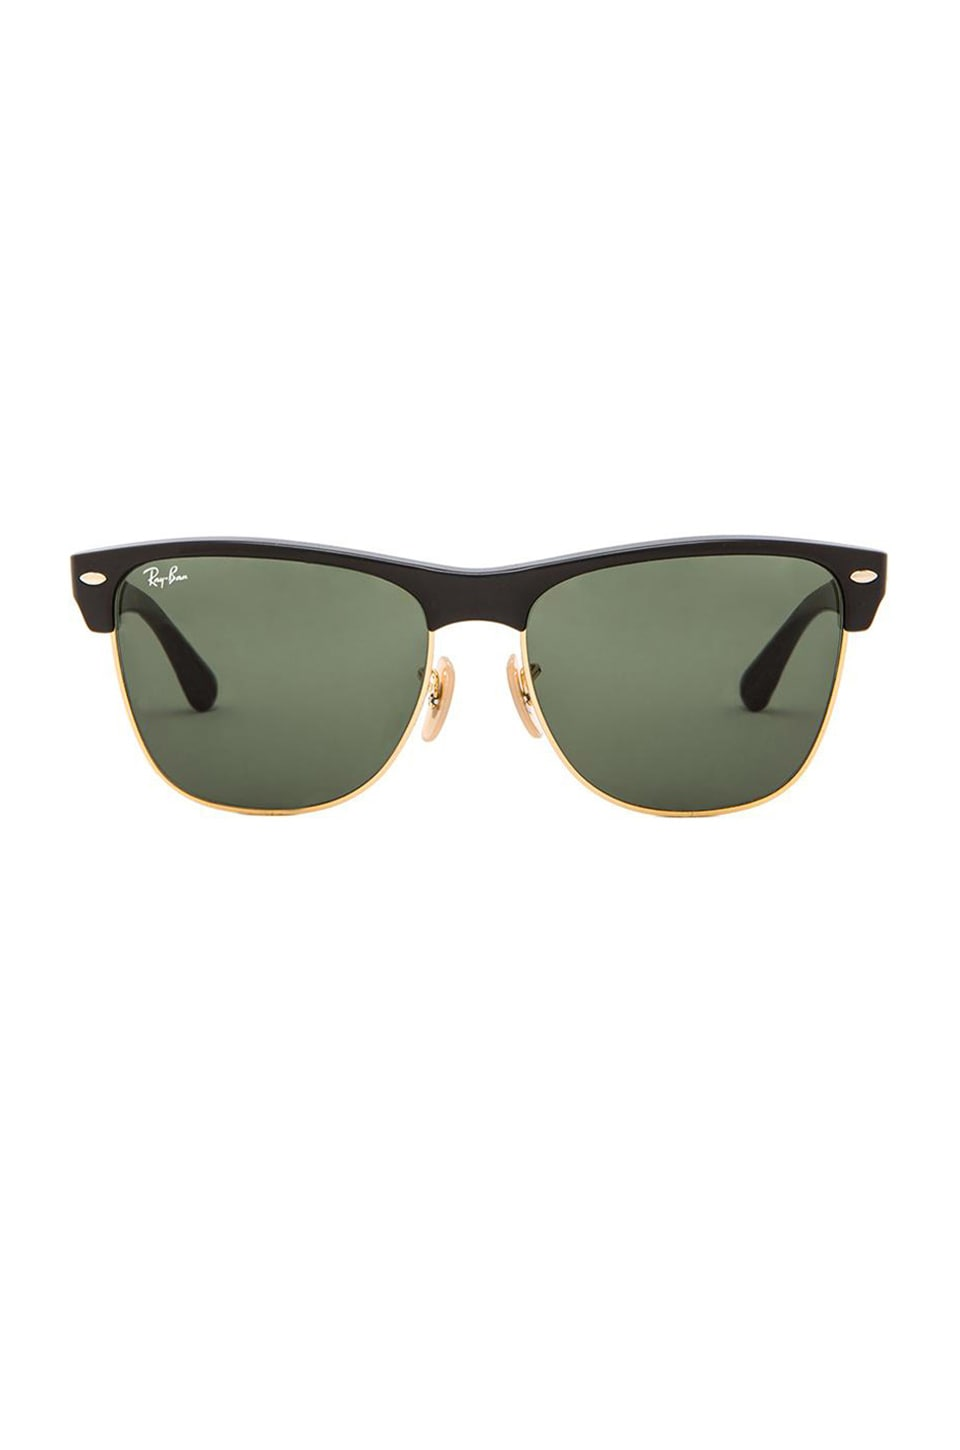 Ray-Ban Clubmaster Oversized in Demi Shiny Black